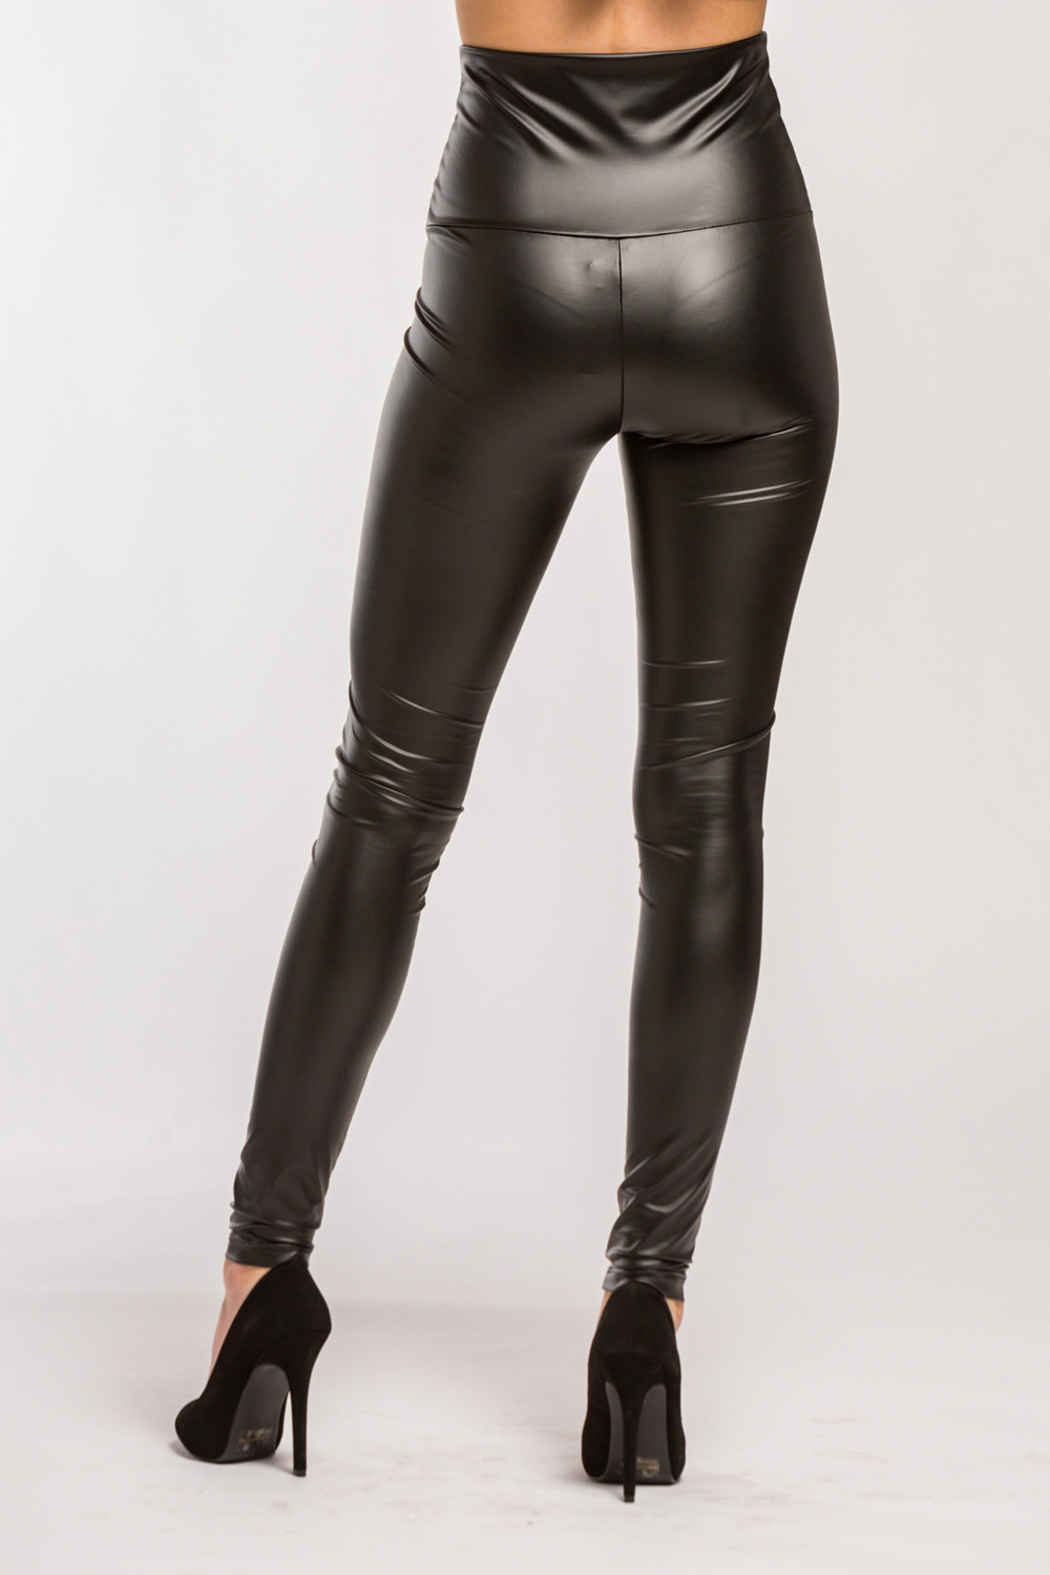 Lyn-Maree's  Faux Leather High Waist Leggings - Side Cropped Image